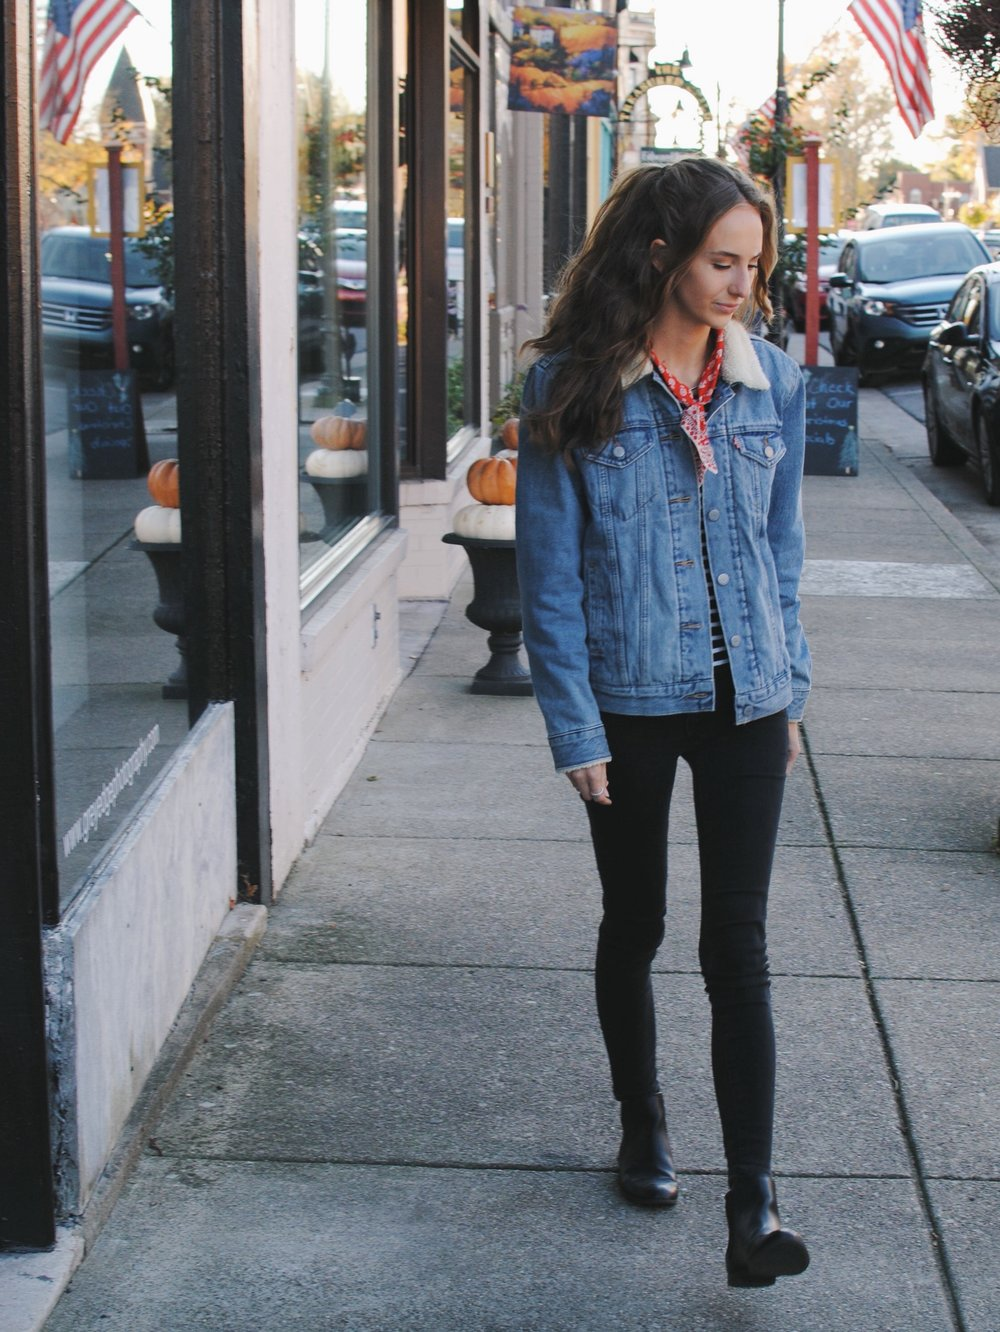 Jacket - Levis Top - Everlane Neck Scarf - Madewell Jeans - Urban Outfitters Boots - Target